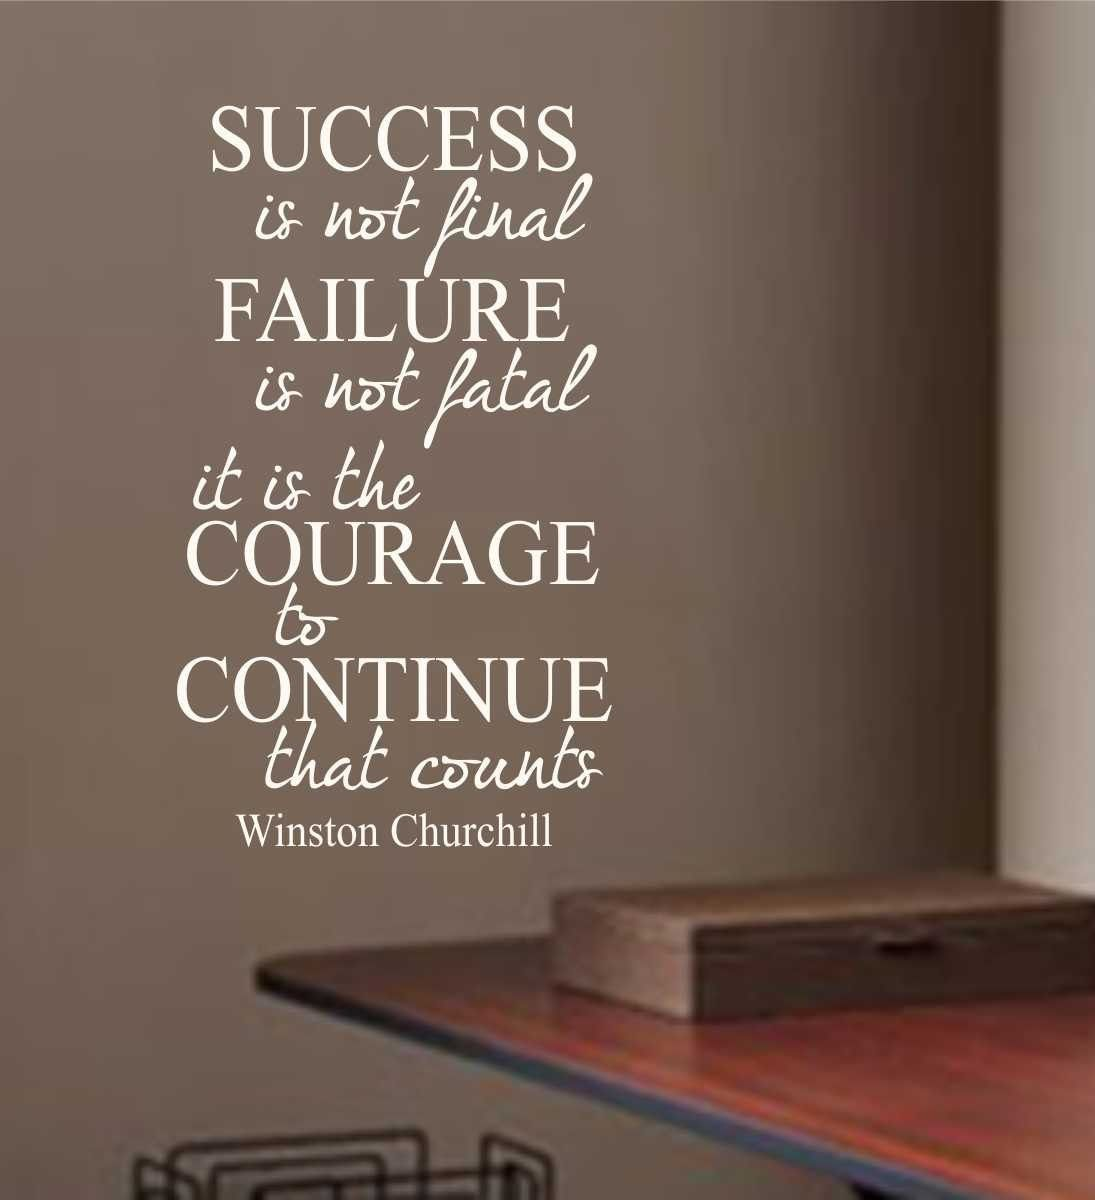 Inspirational Courage Quotes: Success Failure Courage Quote